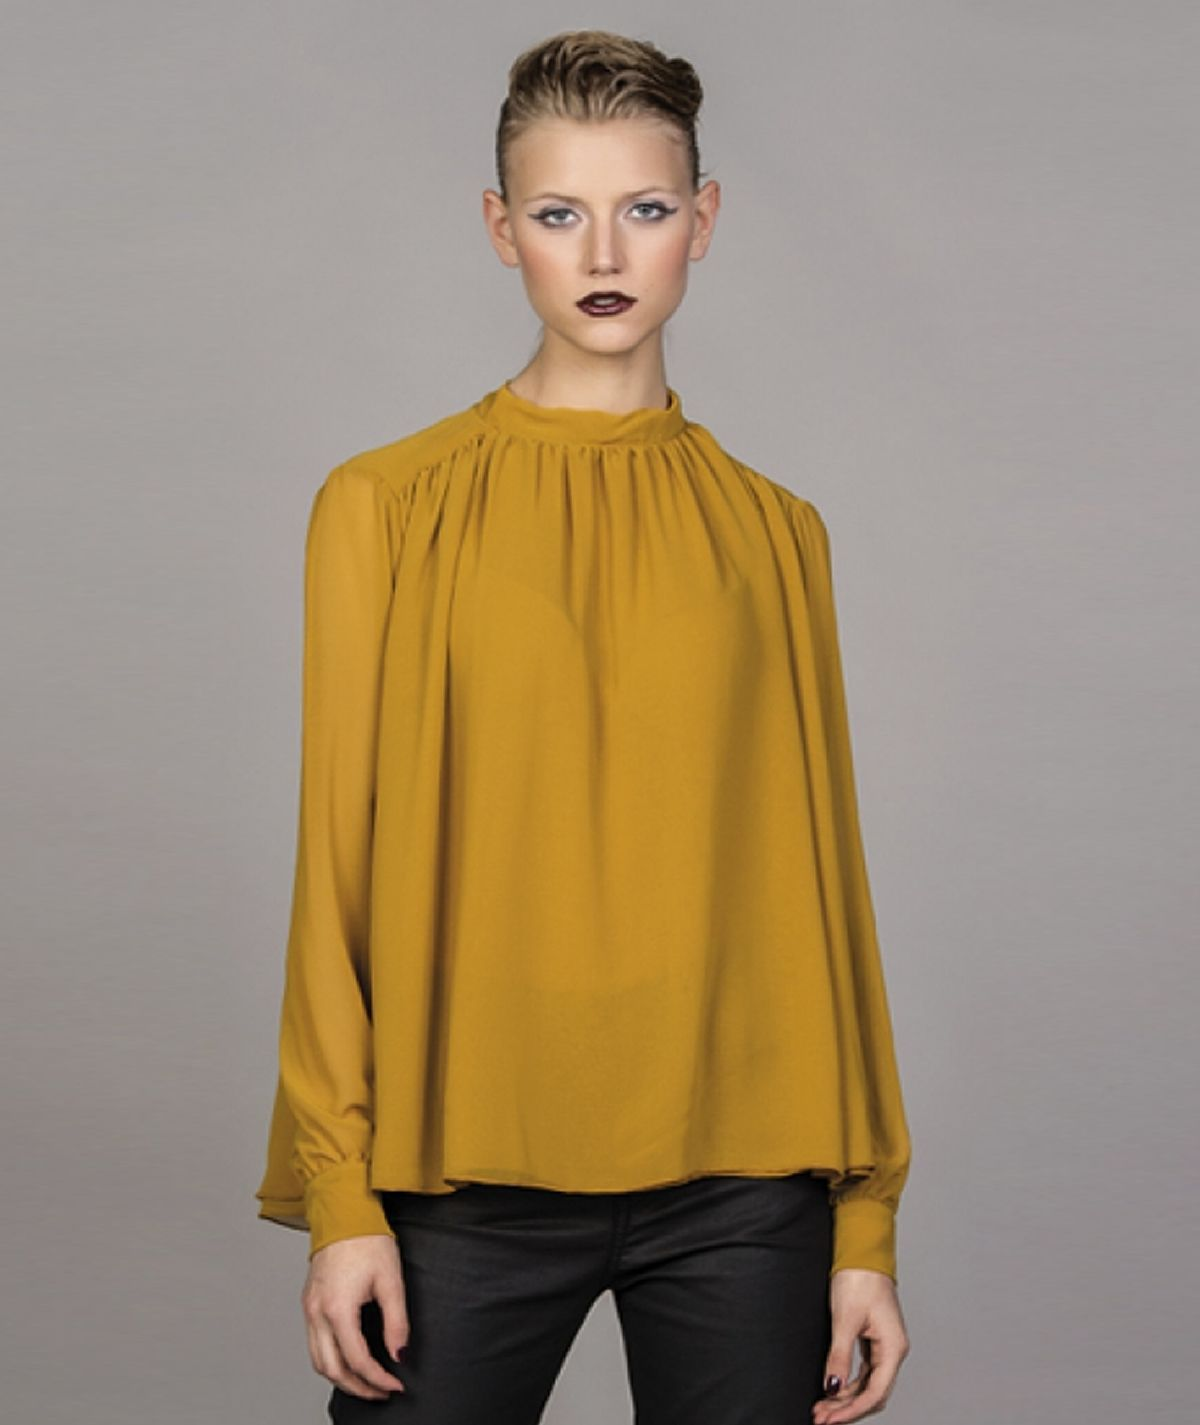 Blouse with bow in the back